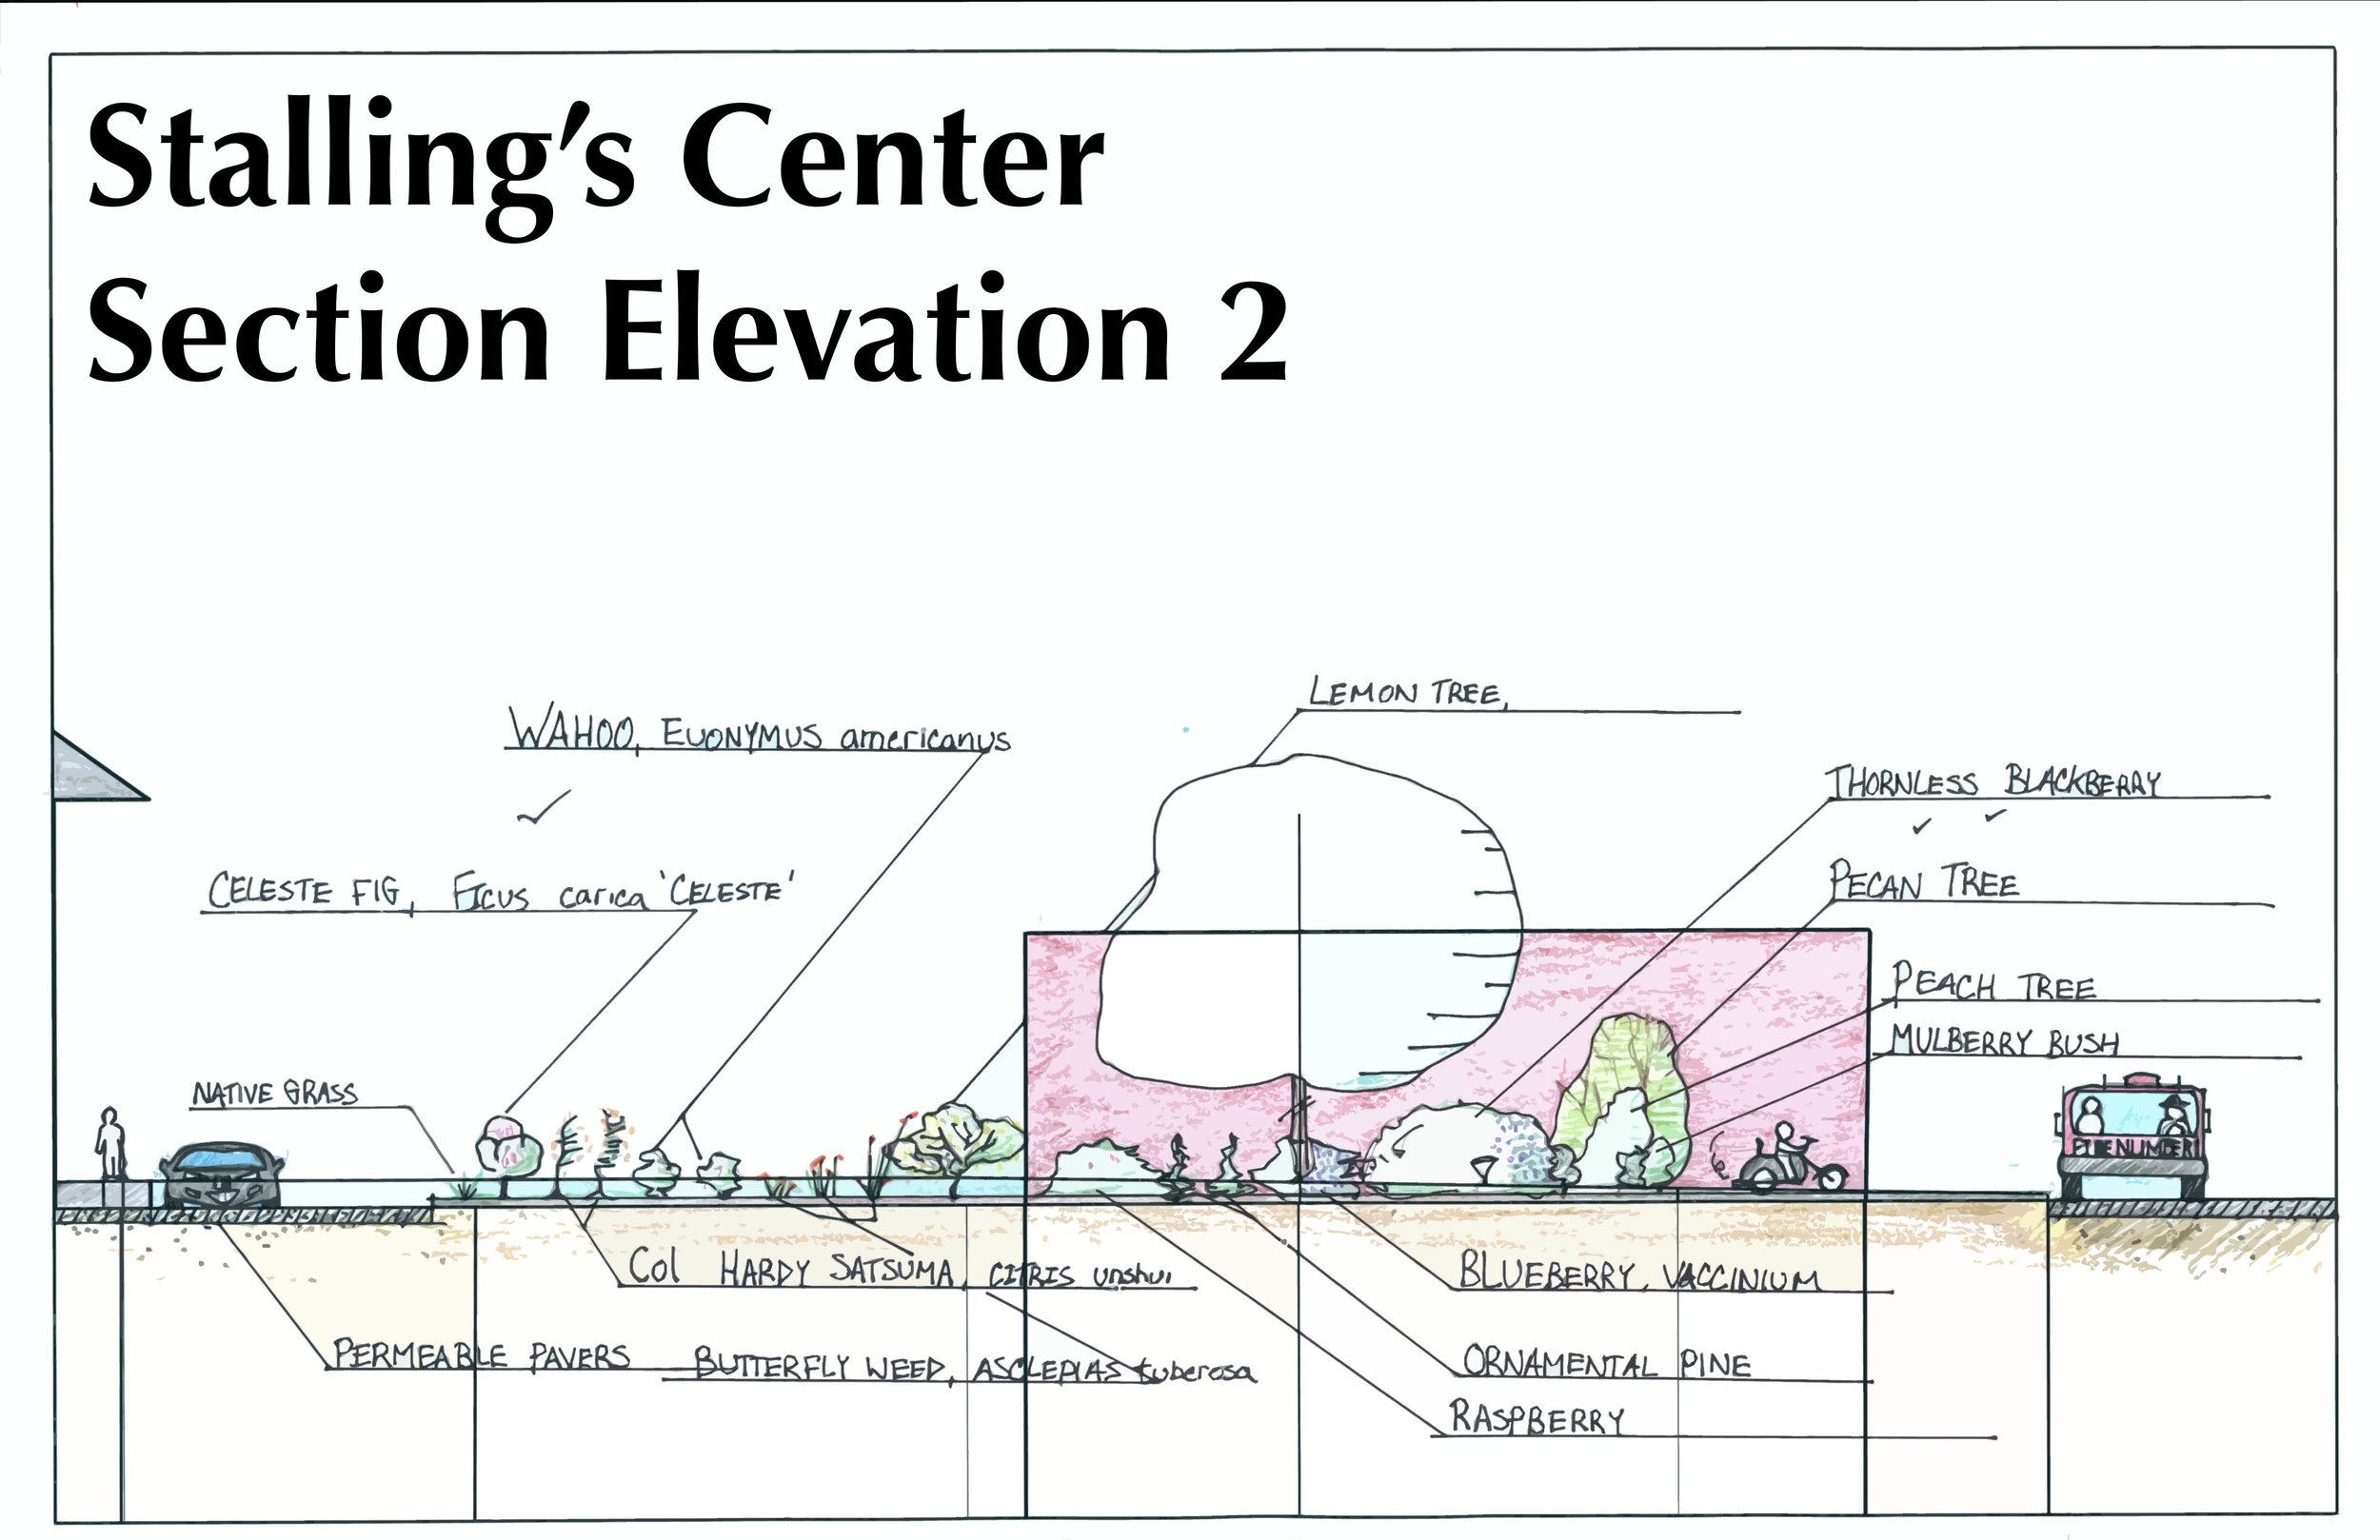 Stallings Center - Section